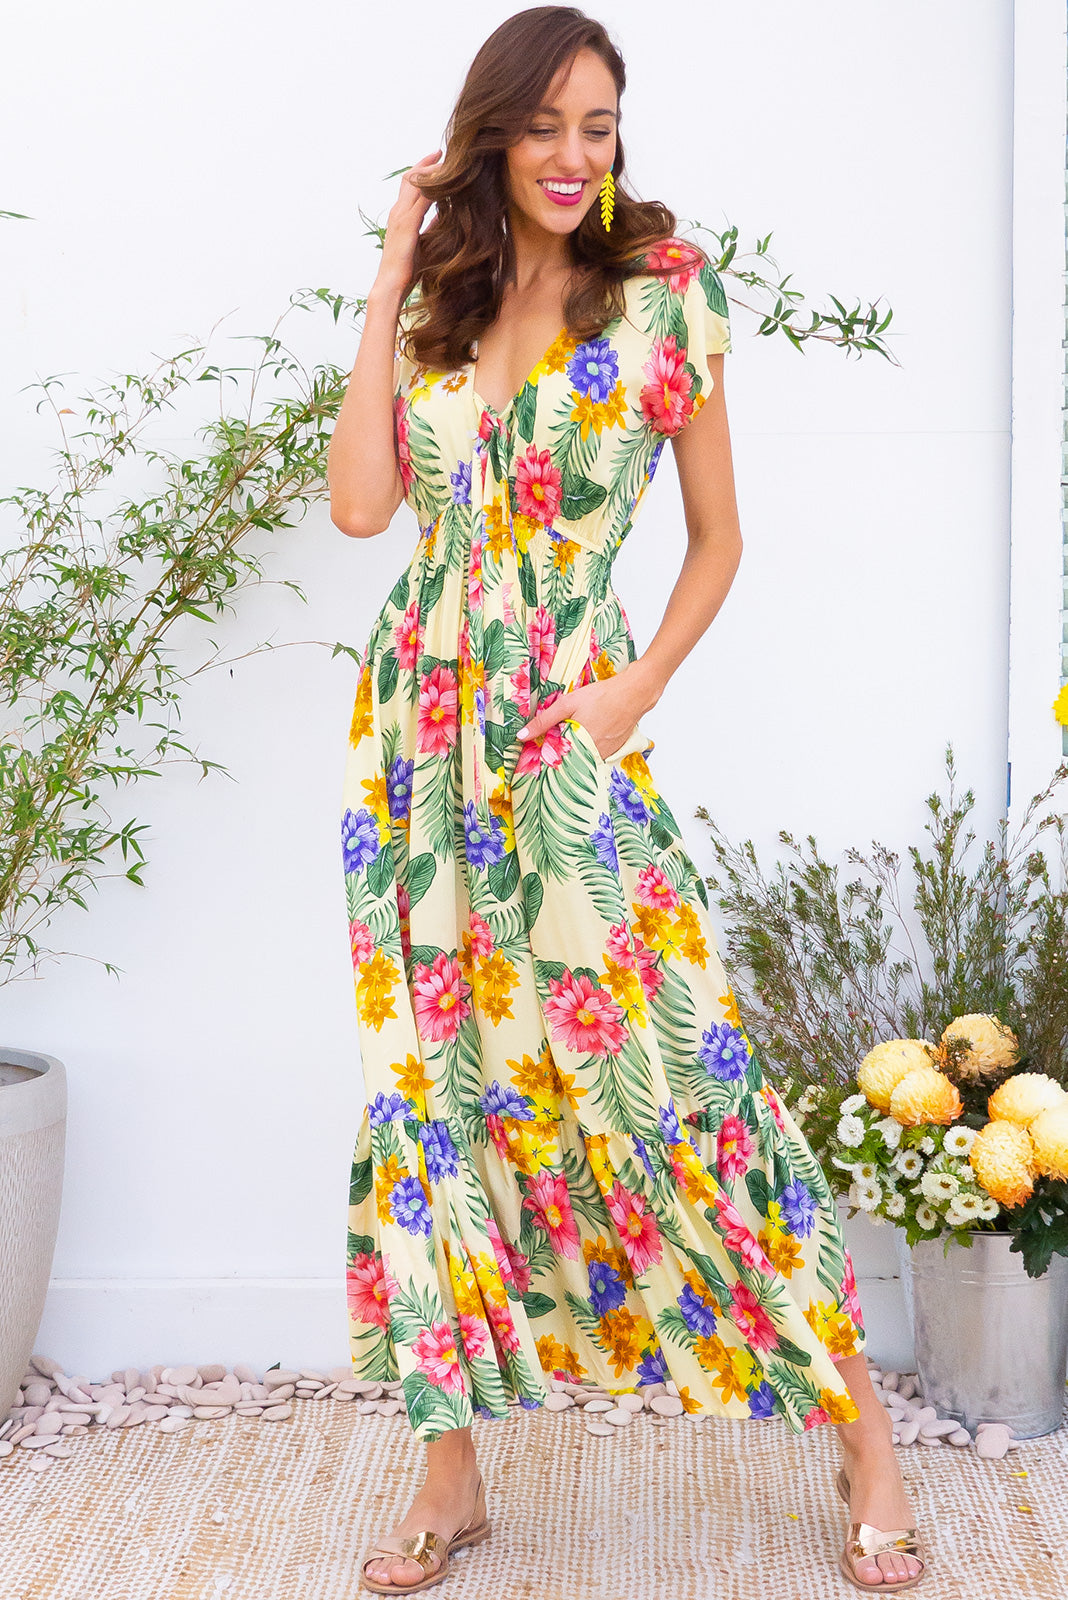 Nellie Tropical Sunshine Maxi Dress Maxi dress features elasticated empire line with a cap sleeve and deep v neck the fabric is a soft woven rayon in a soft yellow based tropical inspired floral print